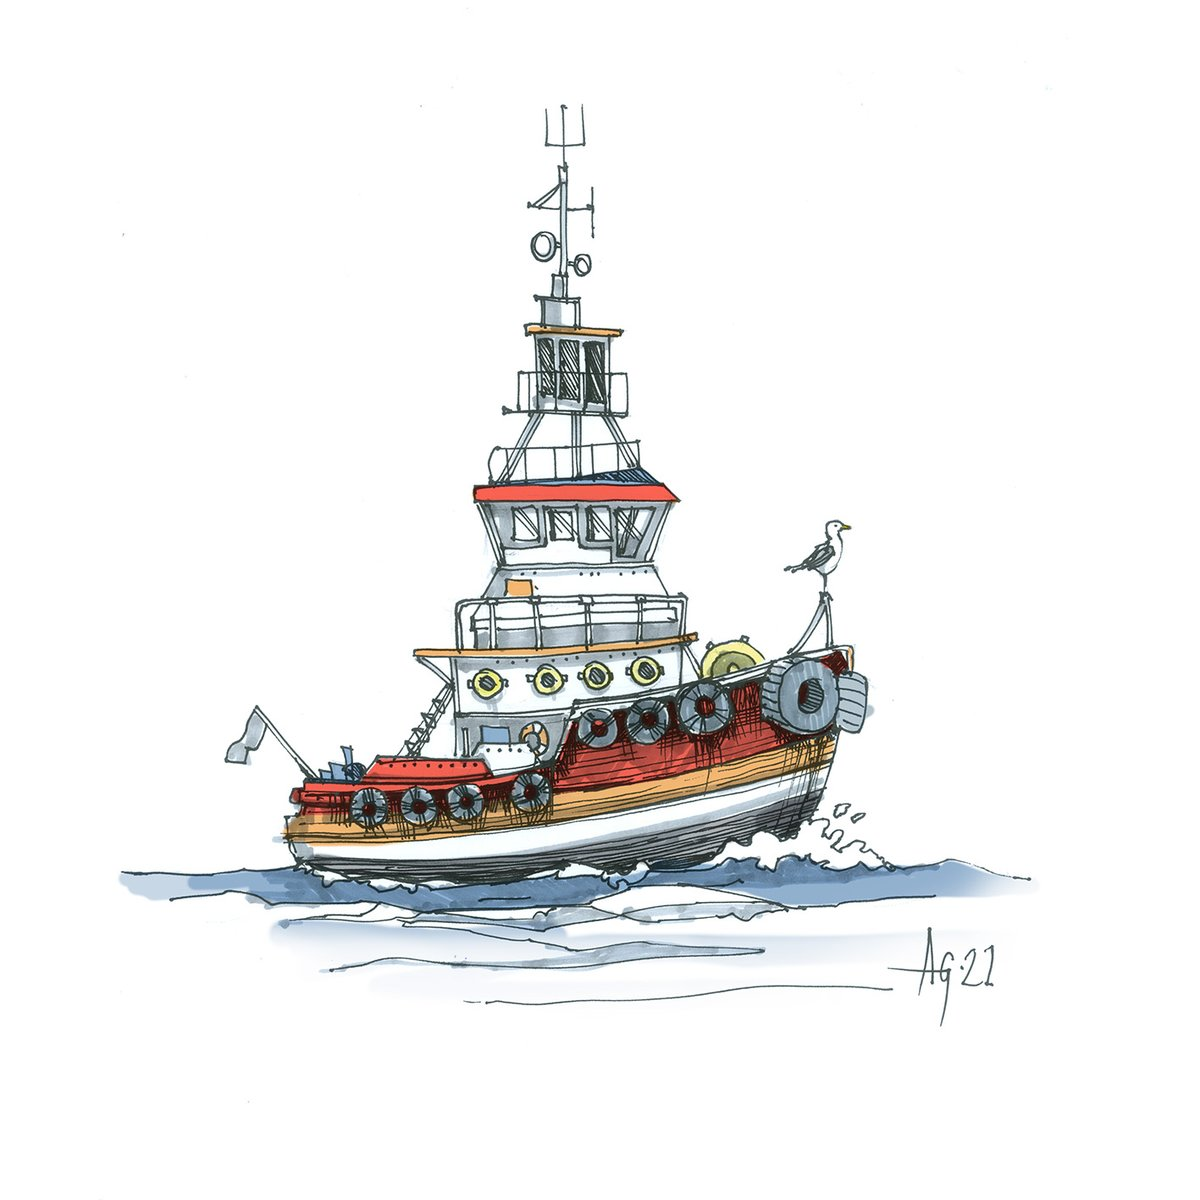 #thedailysketch #sketchjanuary another boat doodle with a bit of colour this time #boat #cartoon #illustration #sketch #sketching #pendrawing #inksketch #thursdayvibes